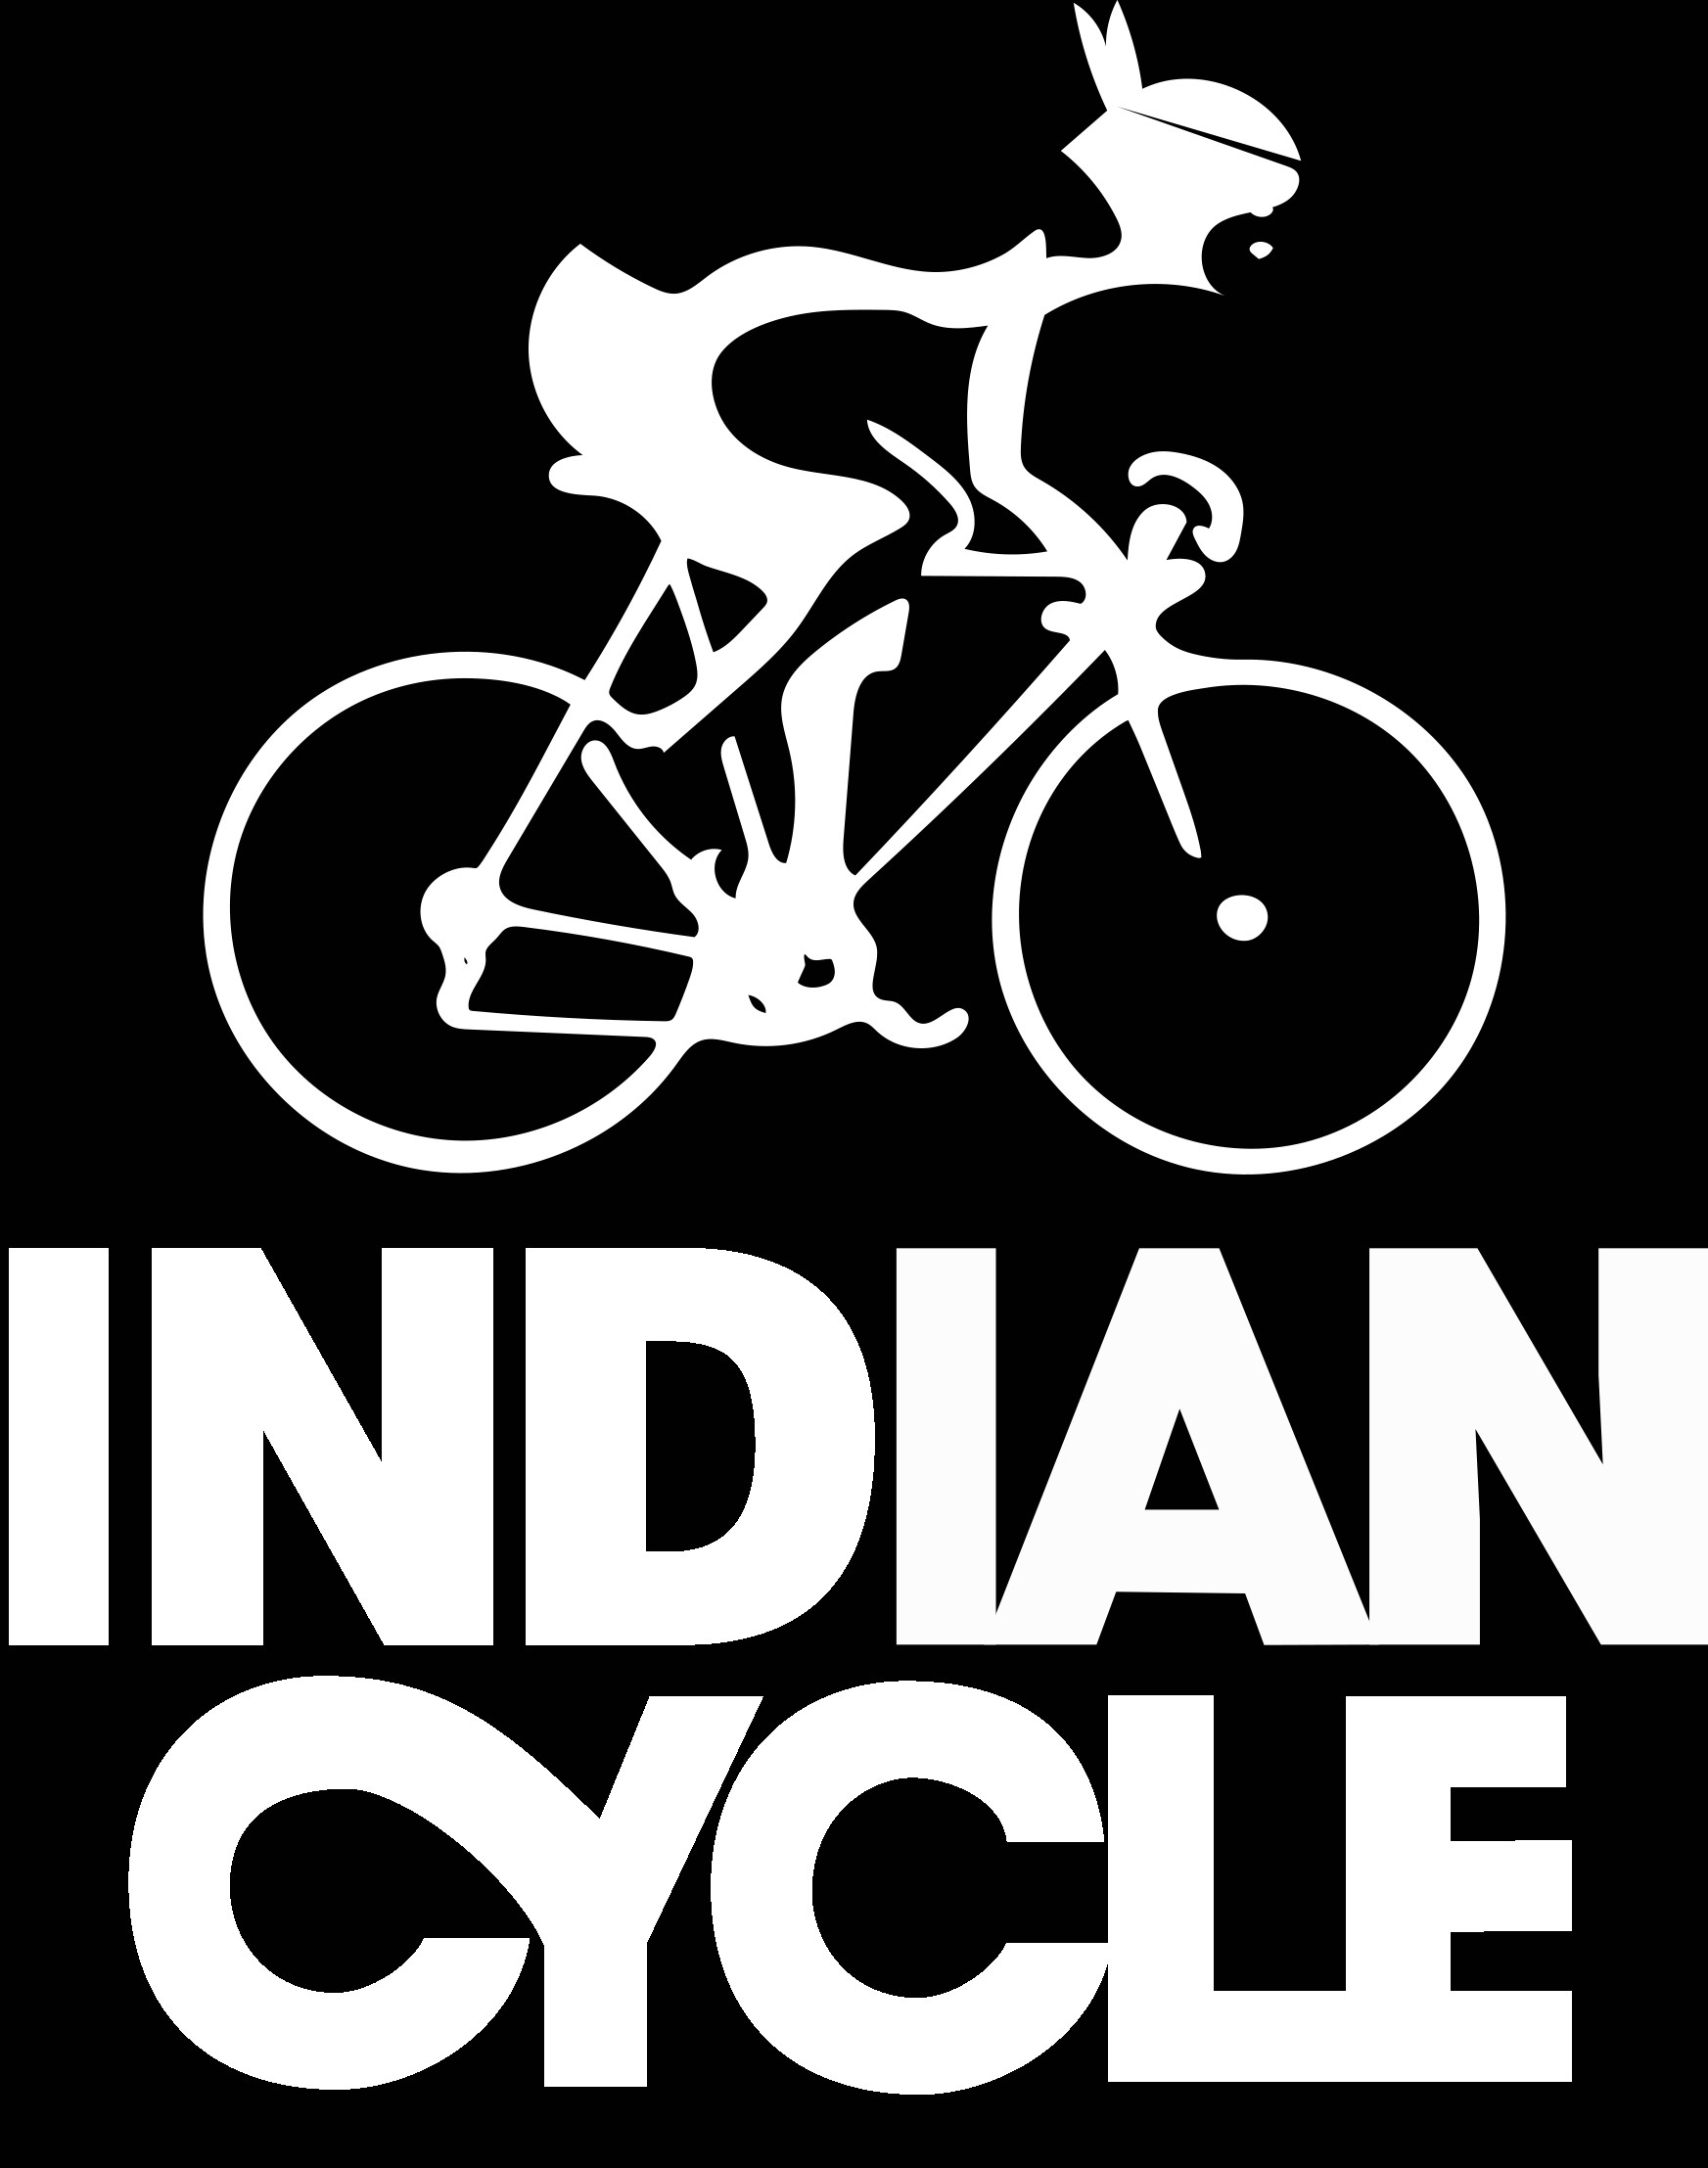 Indian Cycle